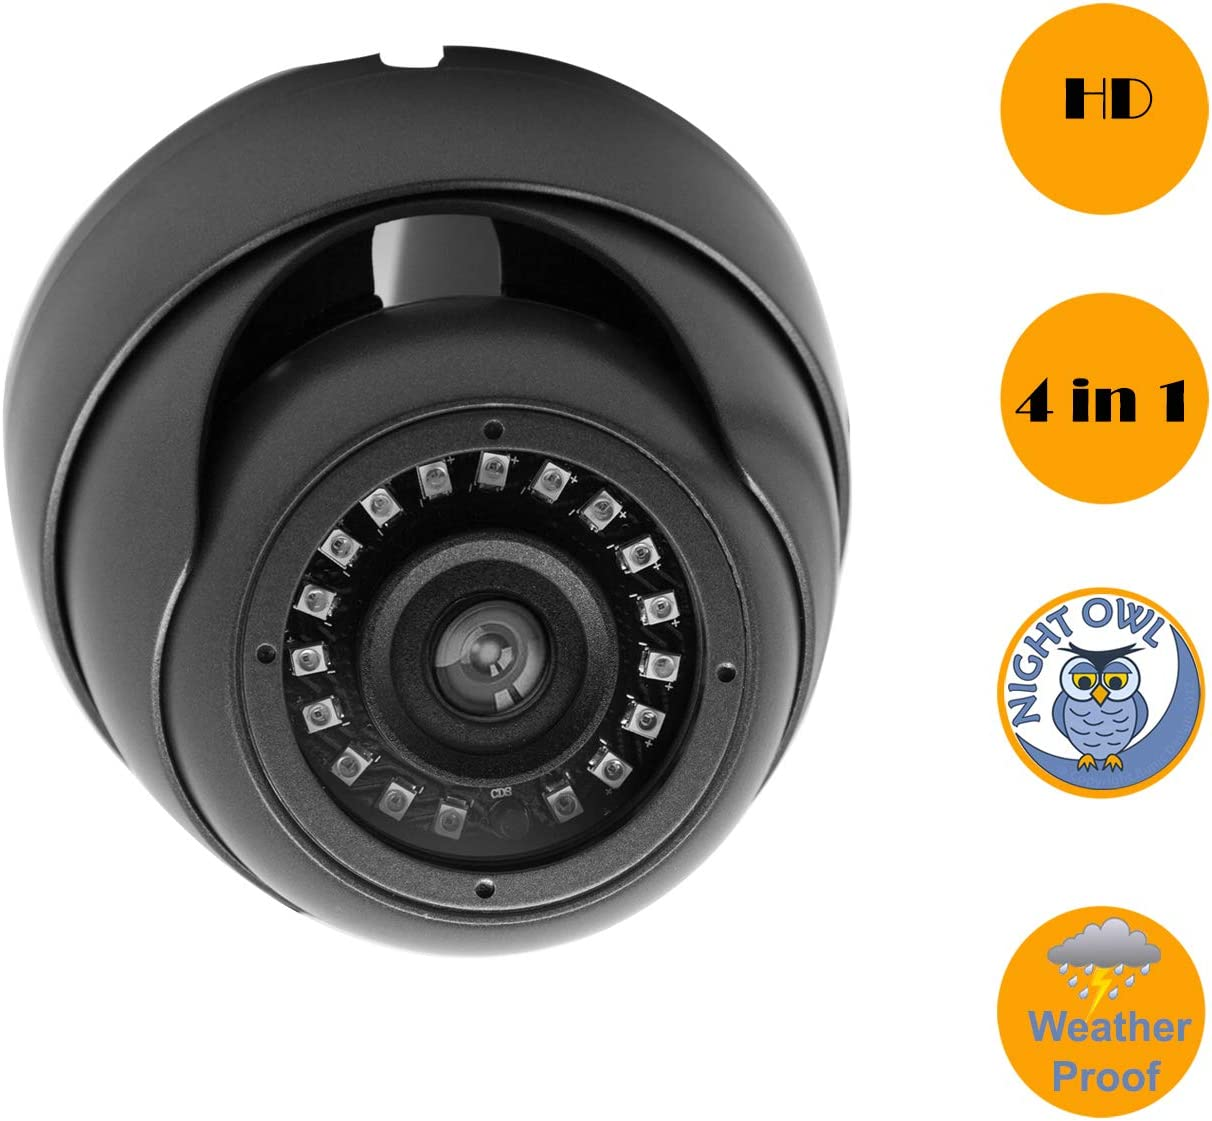 InstallerCCTV Security Surveillance Dome Camera, 1080P AHD CVI TVI 960H, Day Night Vision 18 Laser LEDs IP66 Analog Outdoor Indoor Wide Angle 3.6mm 3.0 Megapixels Lens for CCTV Surveillance Camera